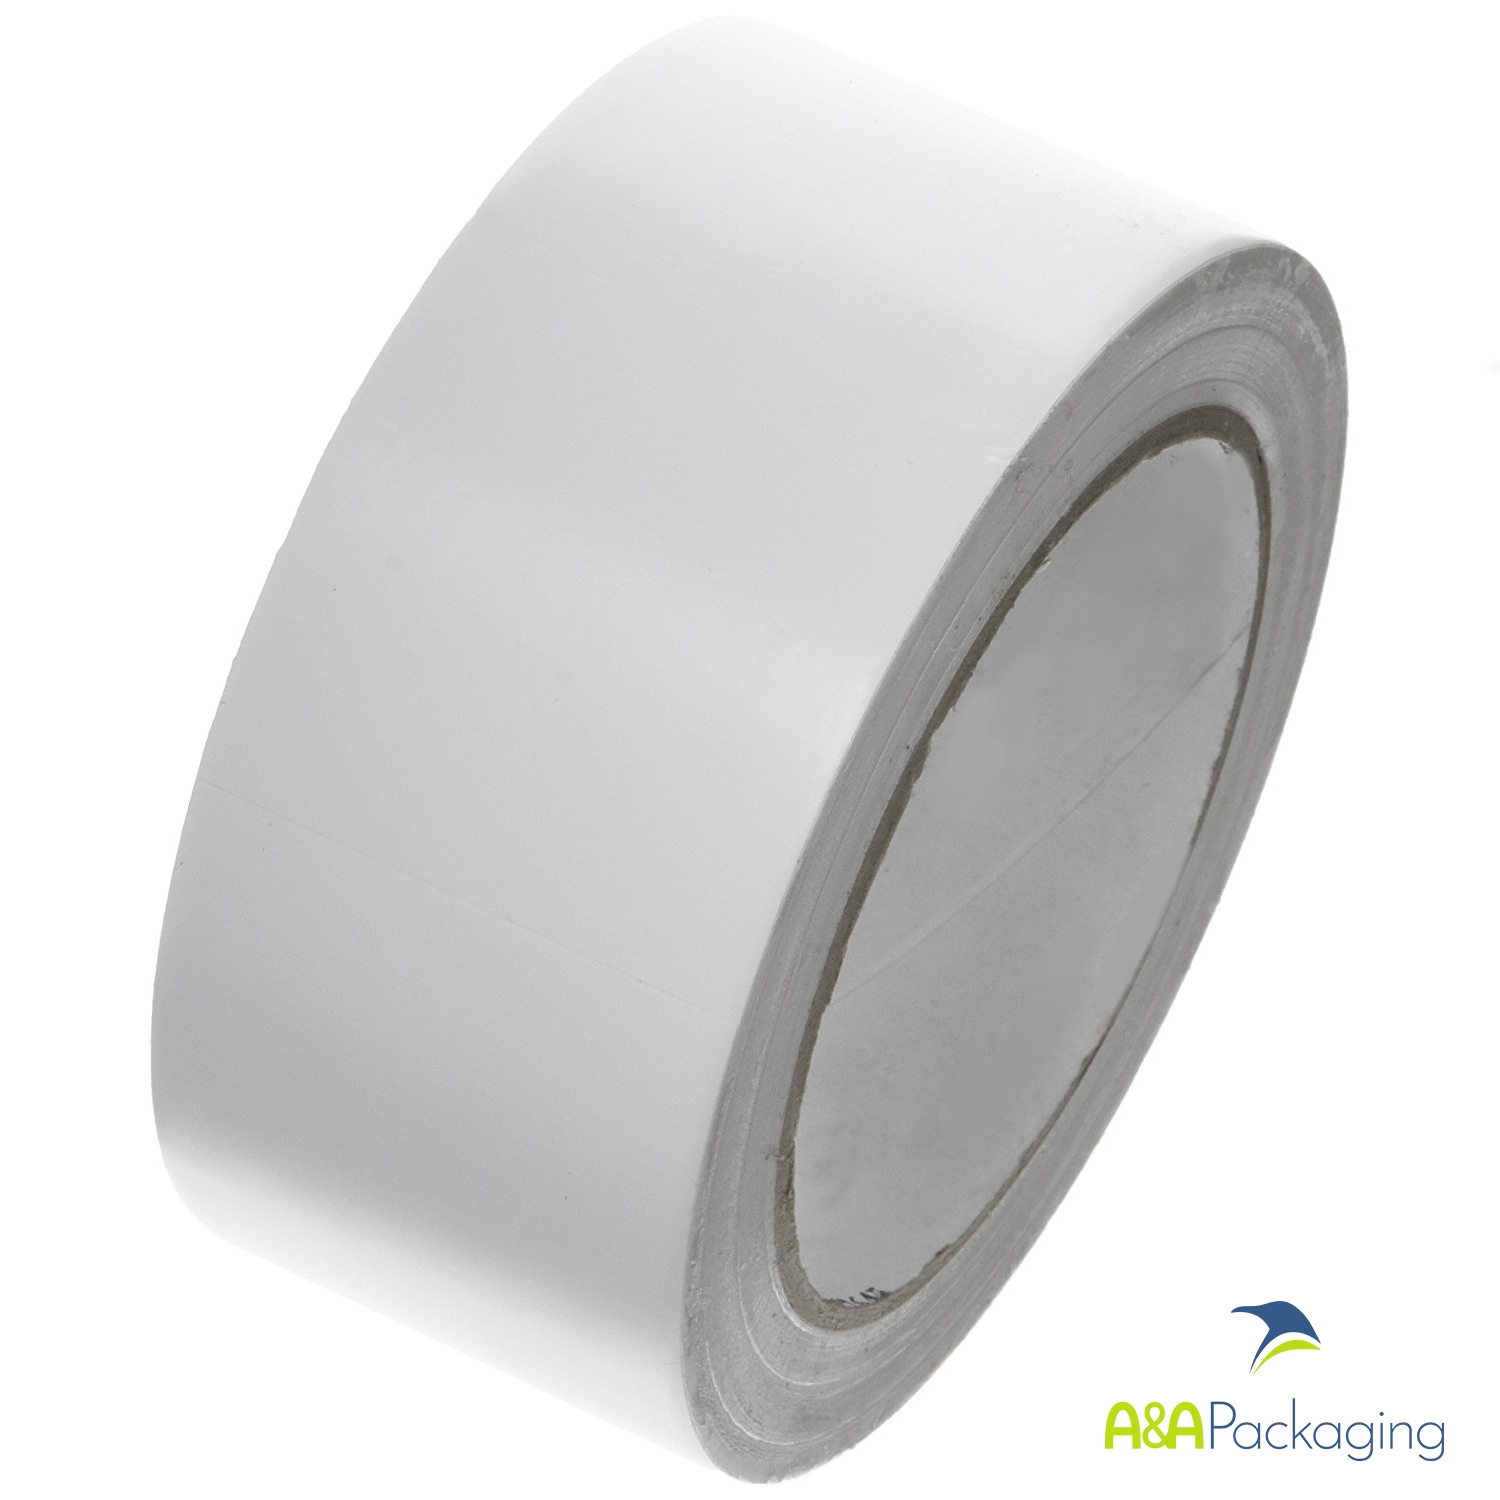 Vinyl Tape White Manuli 808 48mm x 66mtr